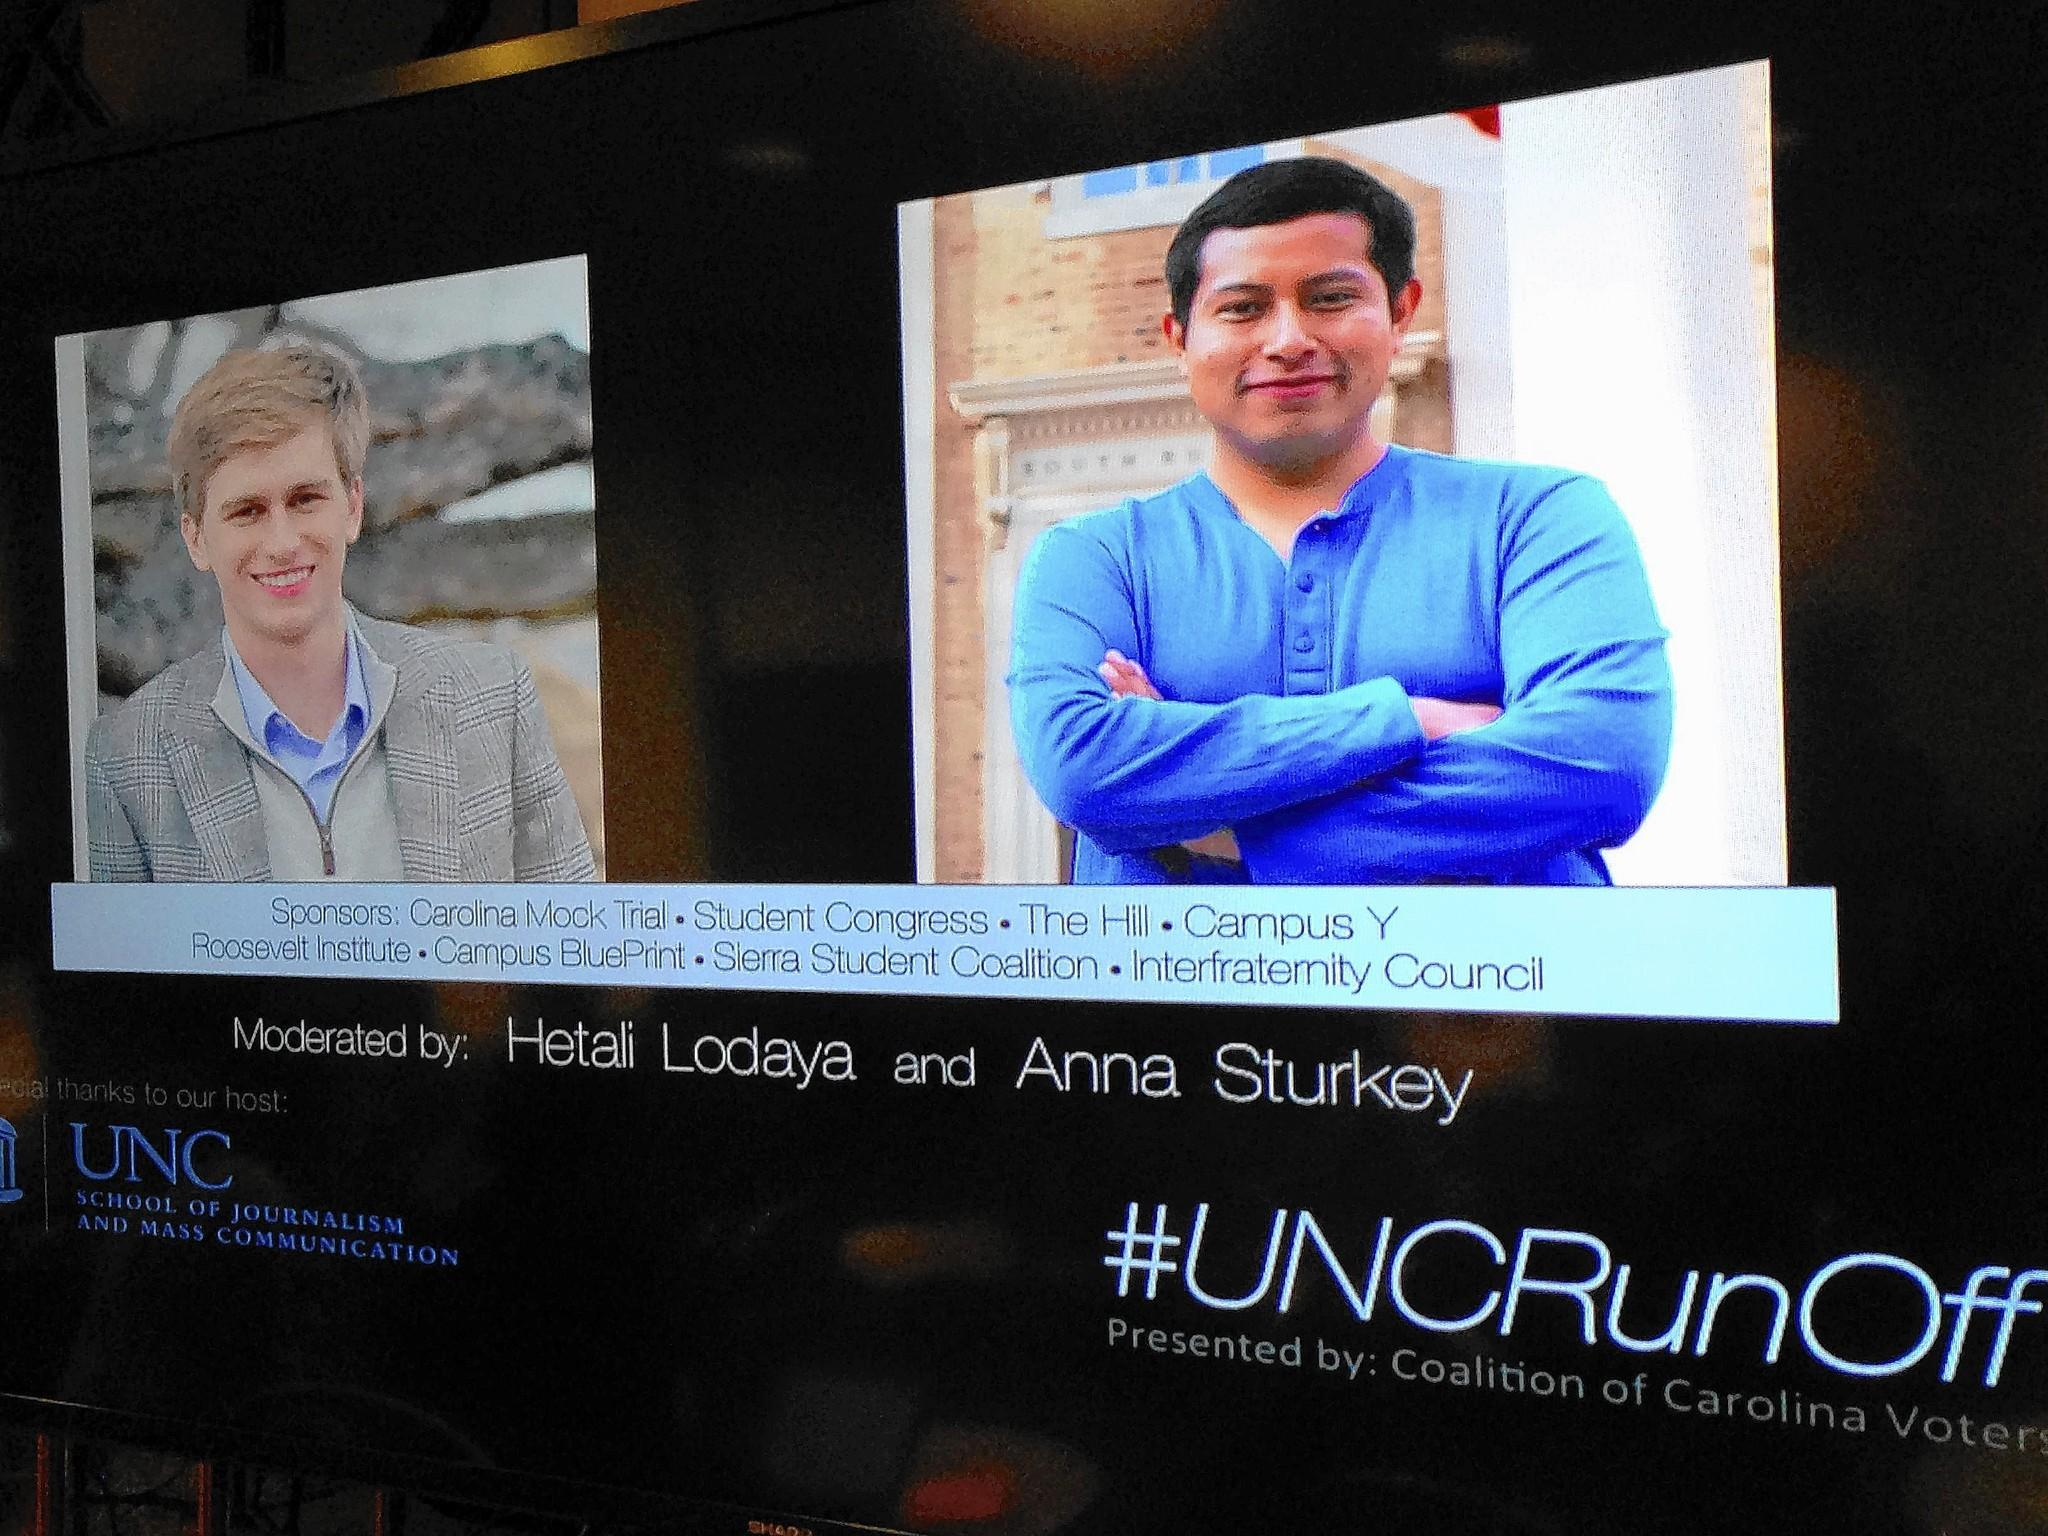 A display screen during an election debate at the University of North Carolina shows the runoff candidates for student body president, Andrew Powell, left, and Emilio Vicente.